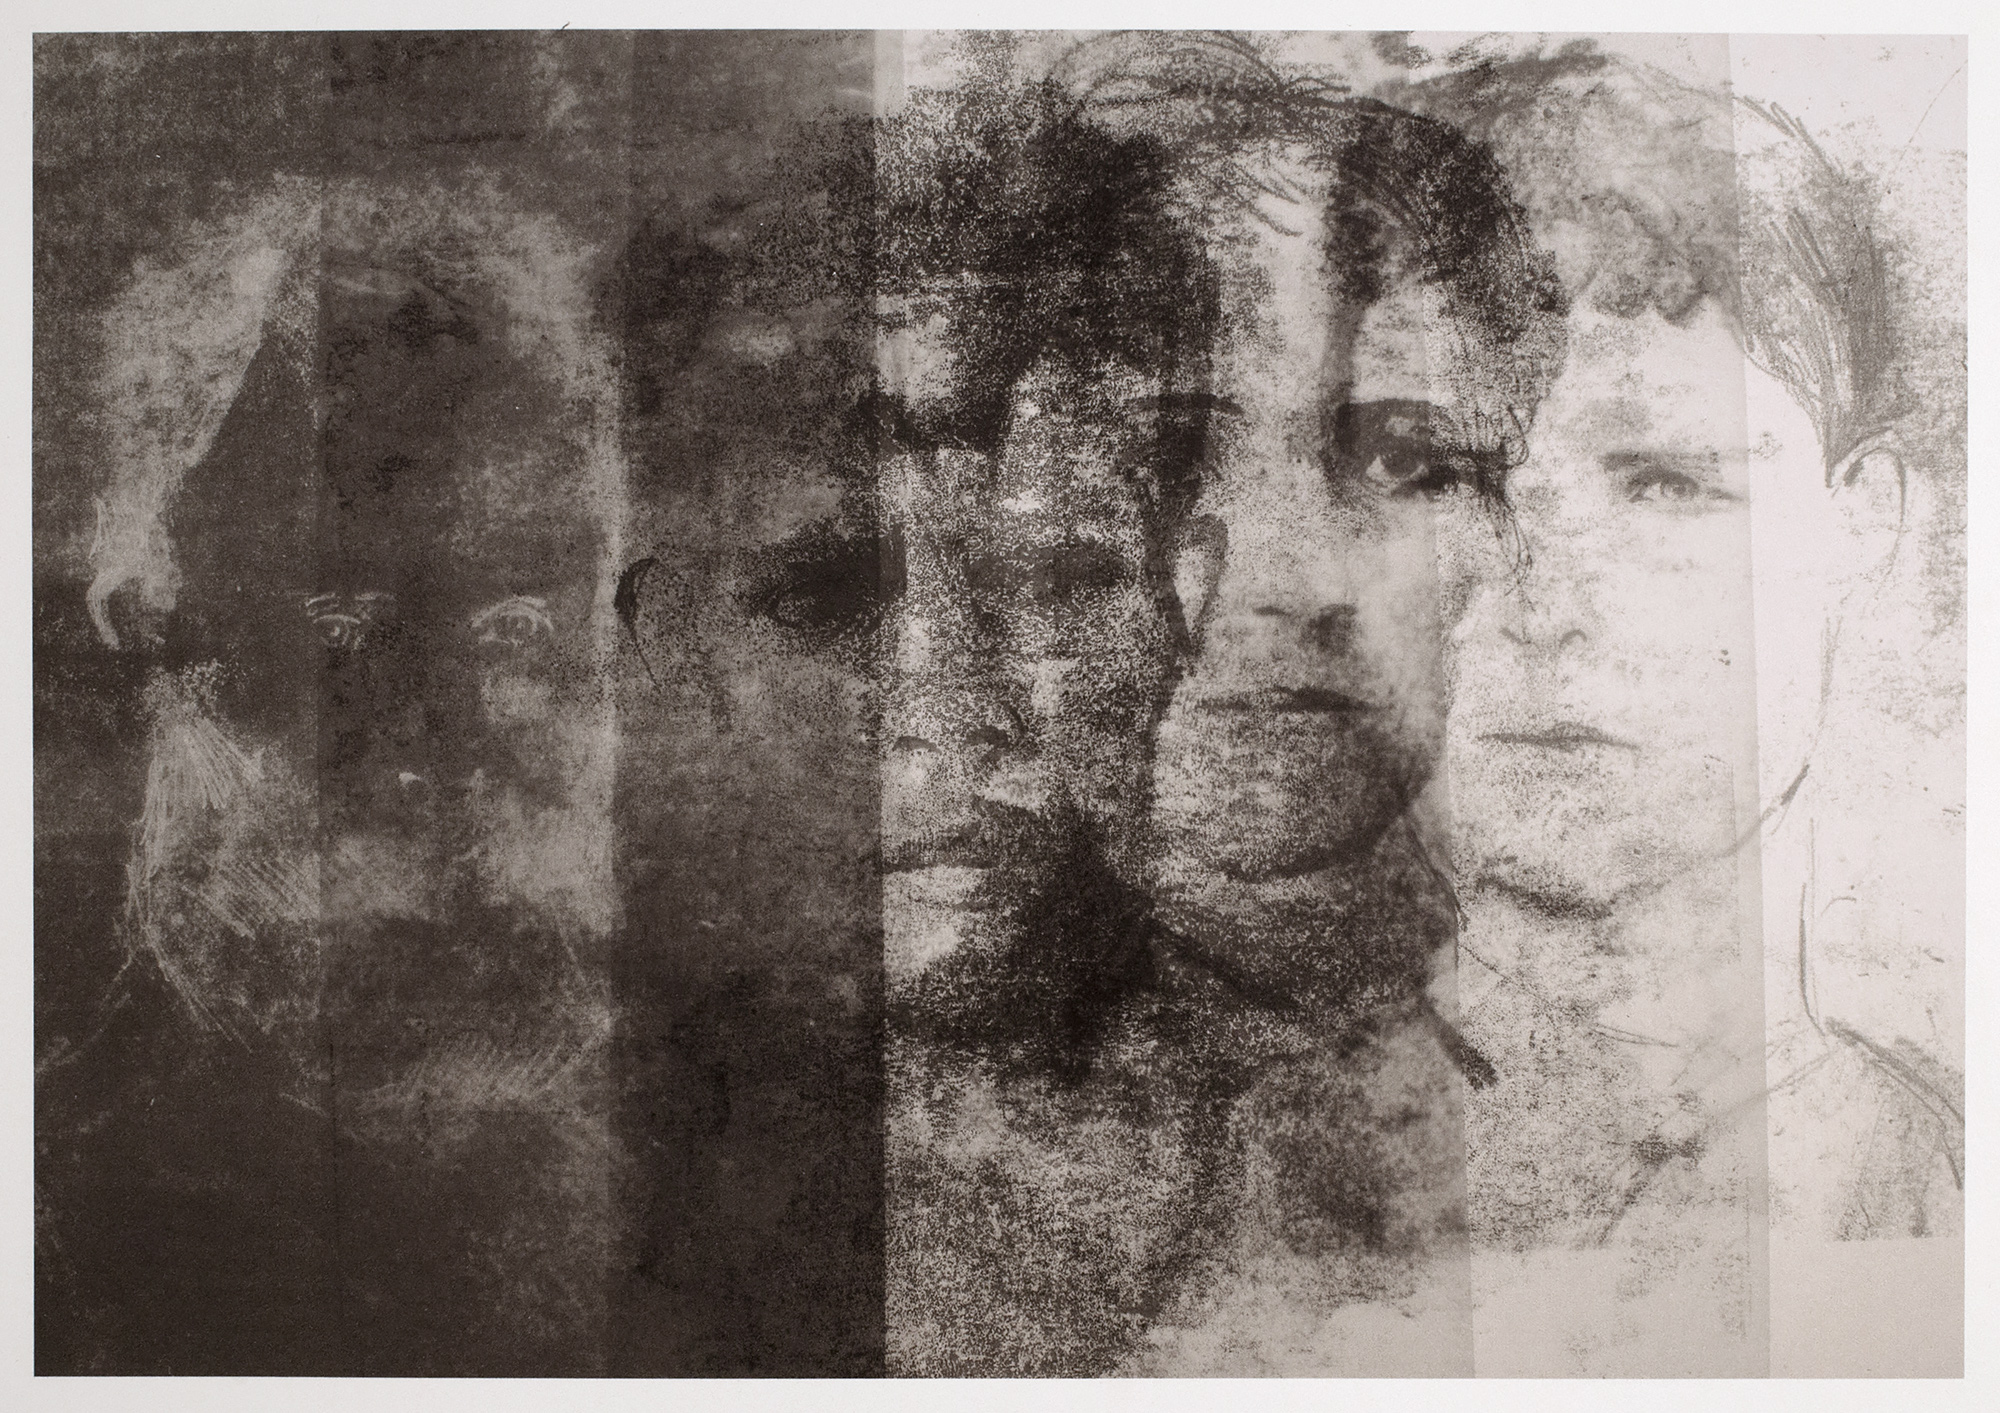 Prisoners of Darlinghurst Gaol, 2015, monoprint on rag paper, 35 x 50 cm